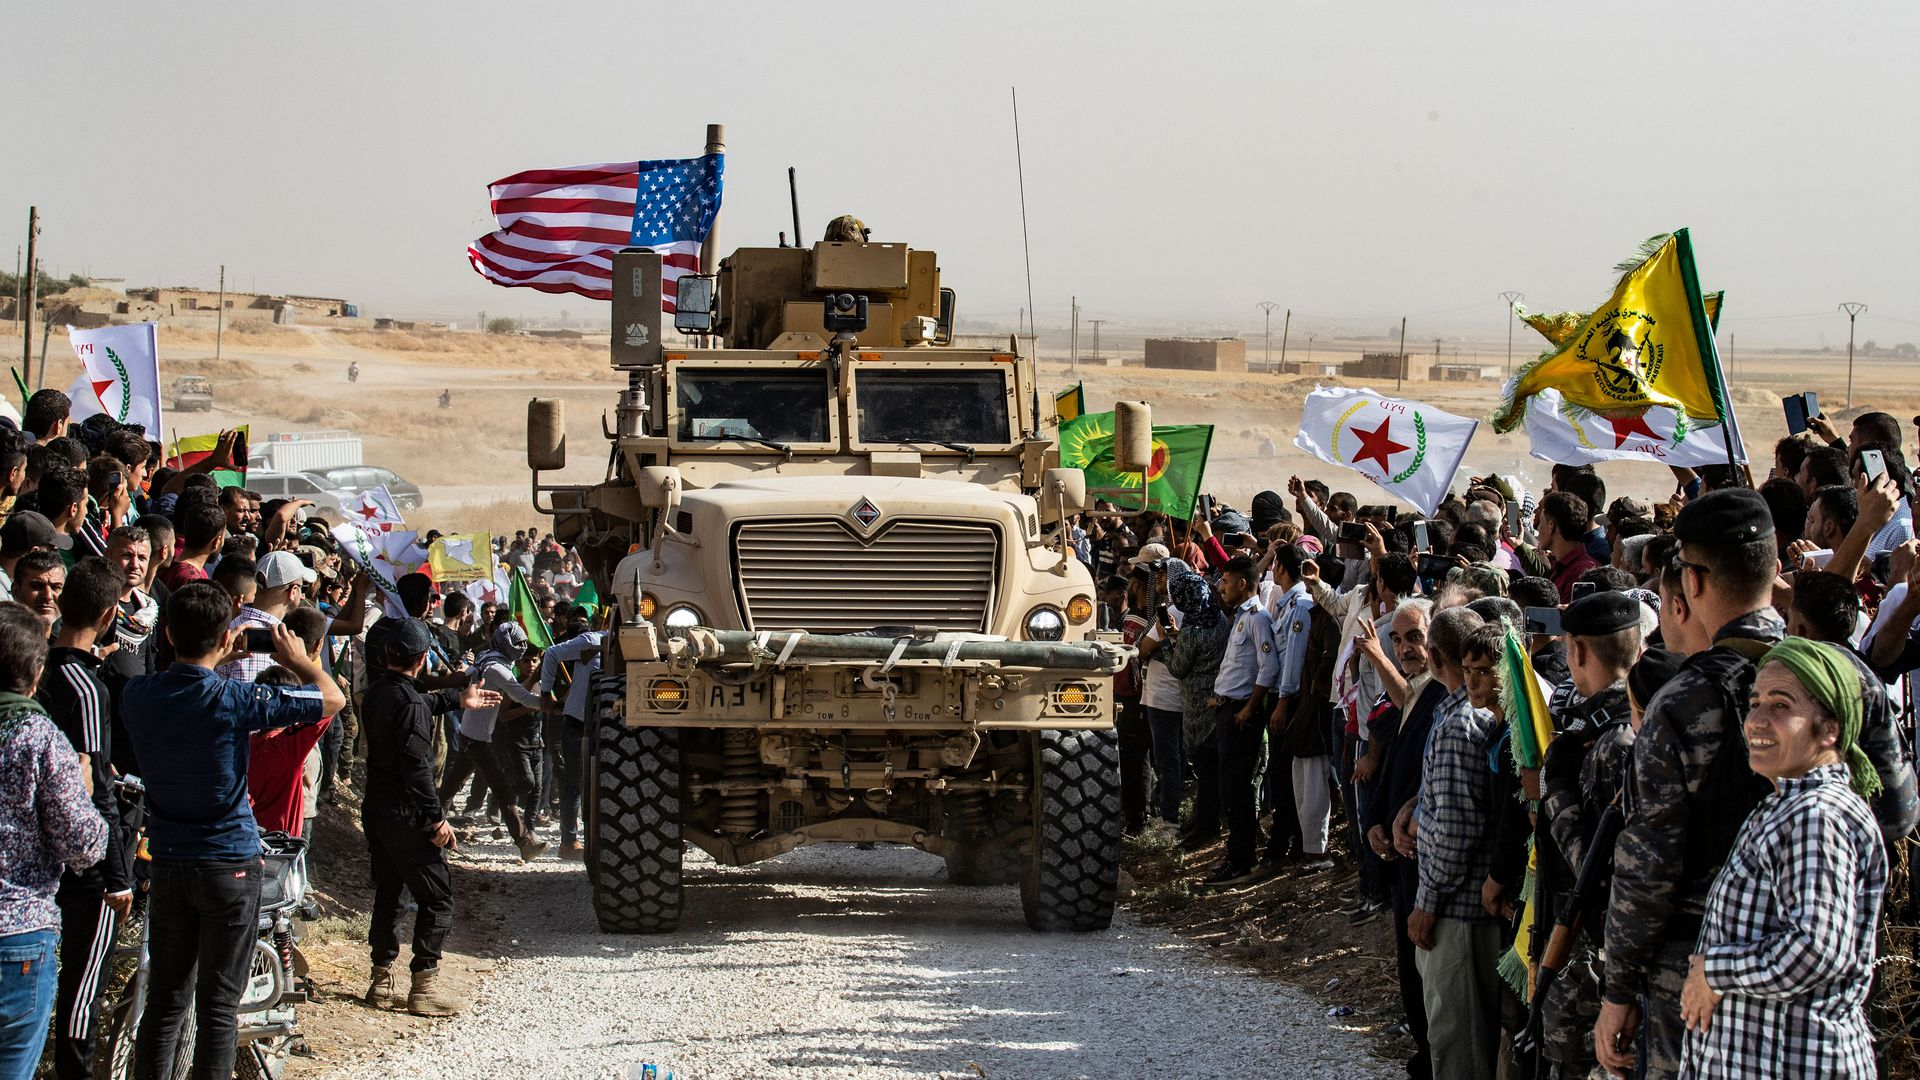 U.S. exit from Syria leaves civilians and Kurdish fighters at risk